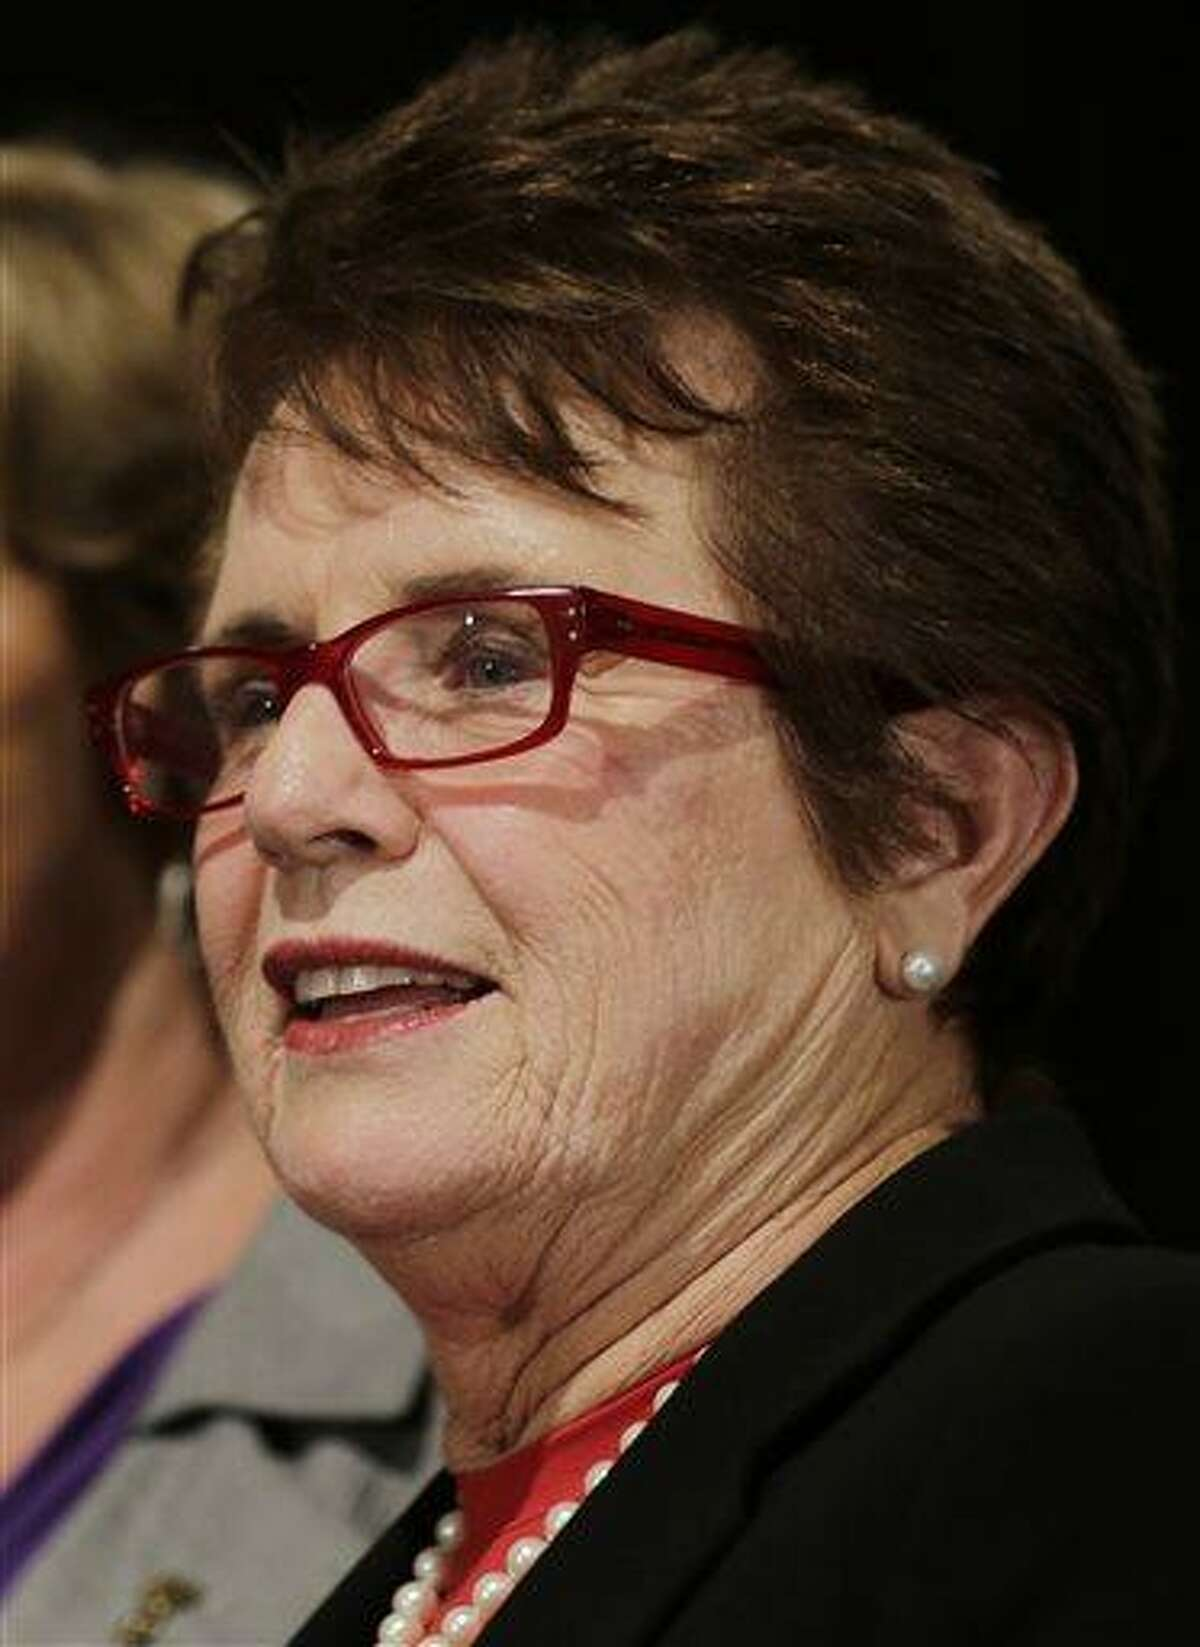 Billie Jean King was instrumental in helping form the Women's Tennis Association 40 years ago. (AP Photo/Charles Krupa, File)